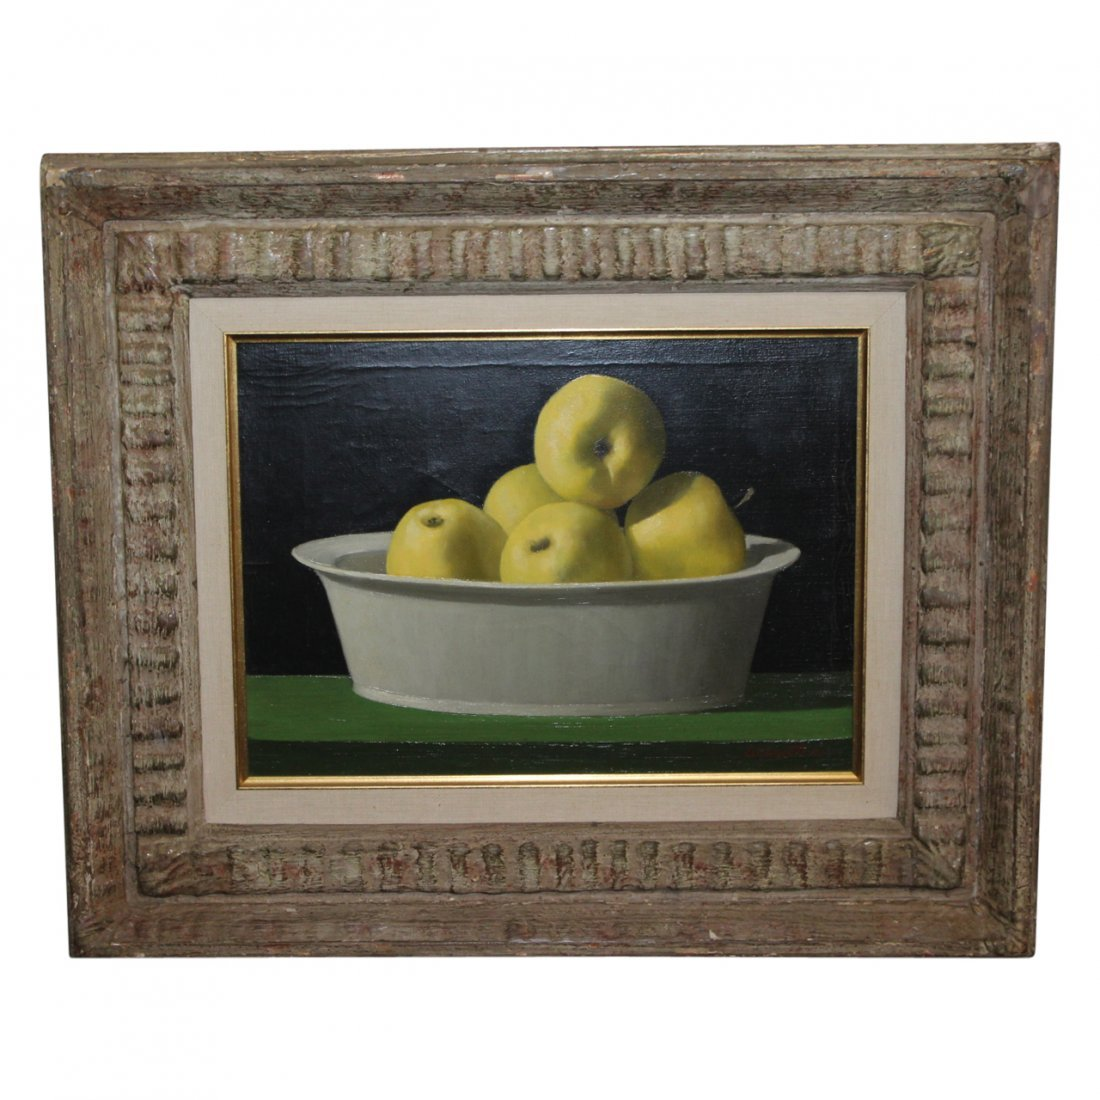 Painting of Apples by Marc C Schoettle  (1925 - 1982)